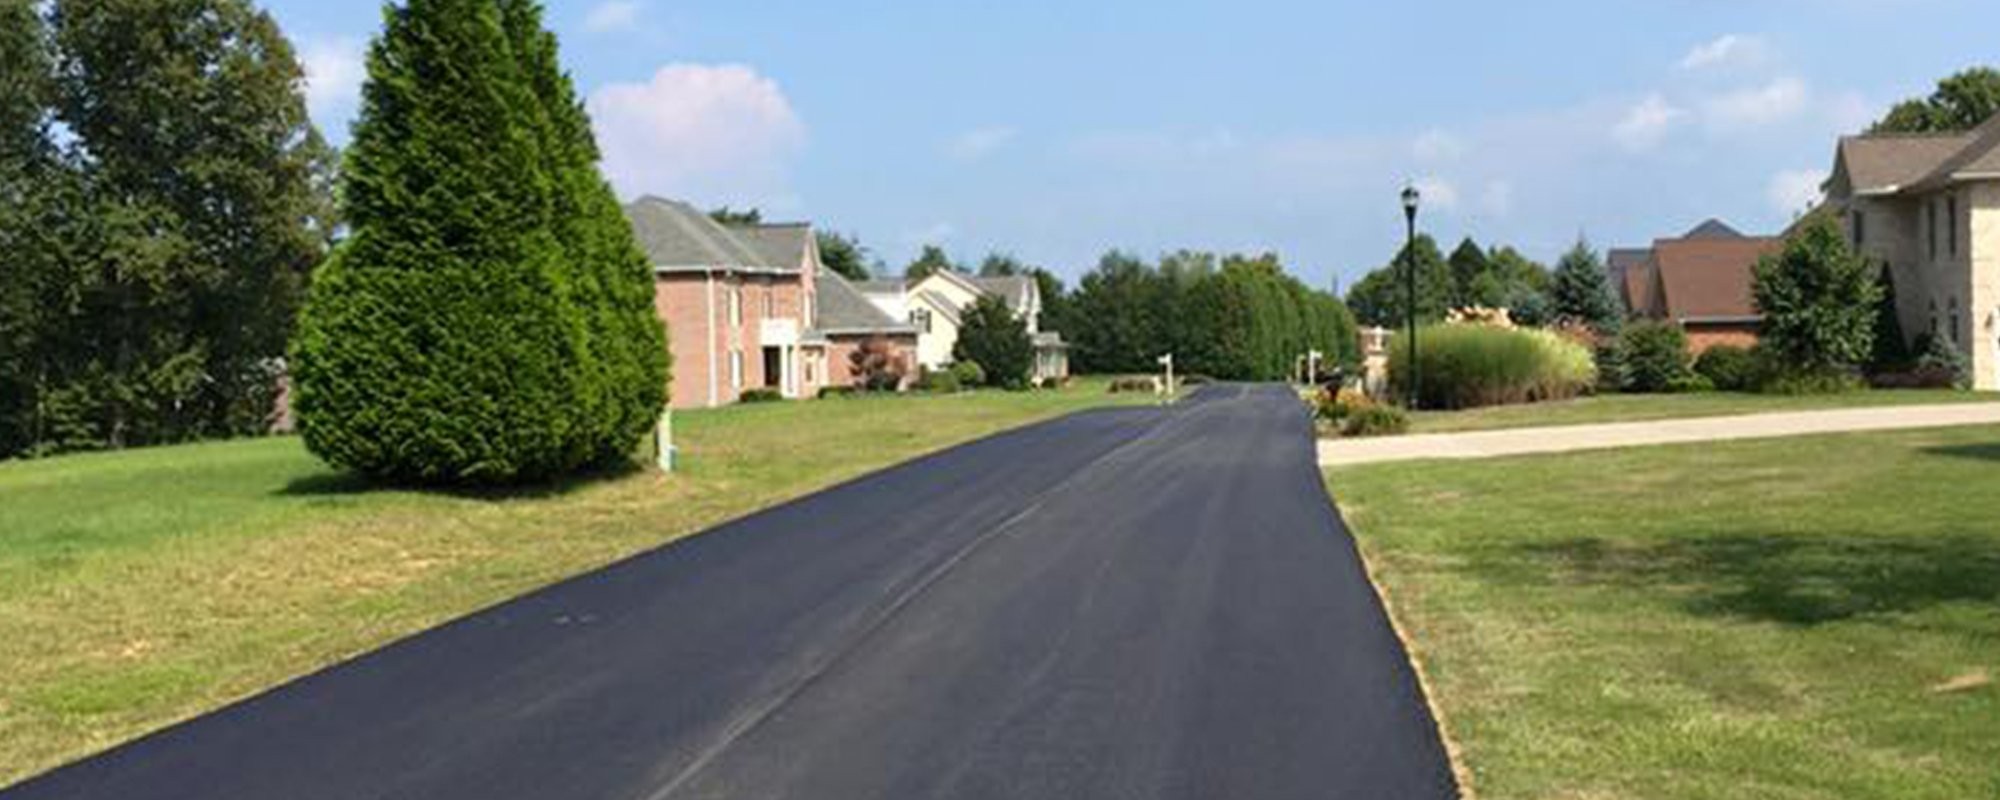 View of well paved road by experts in Virginia